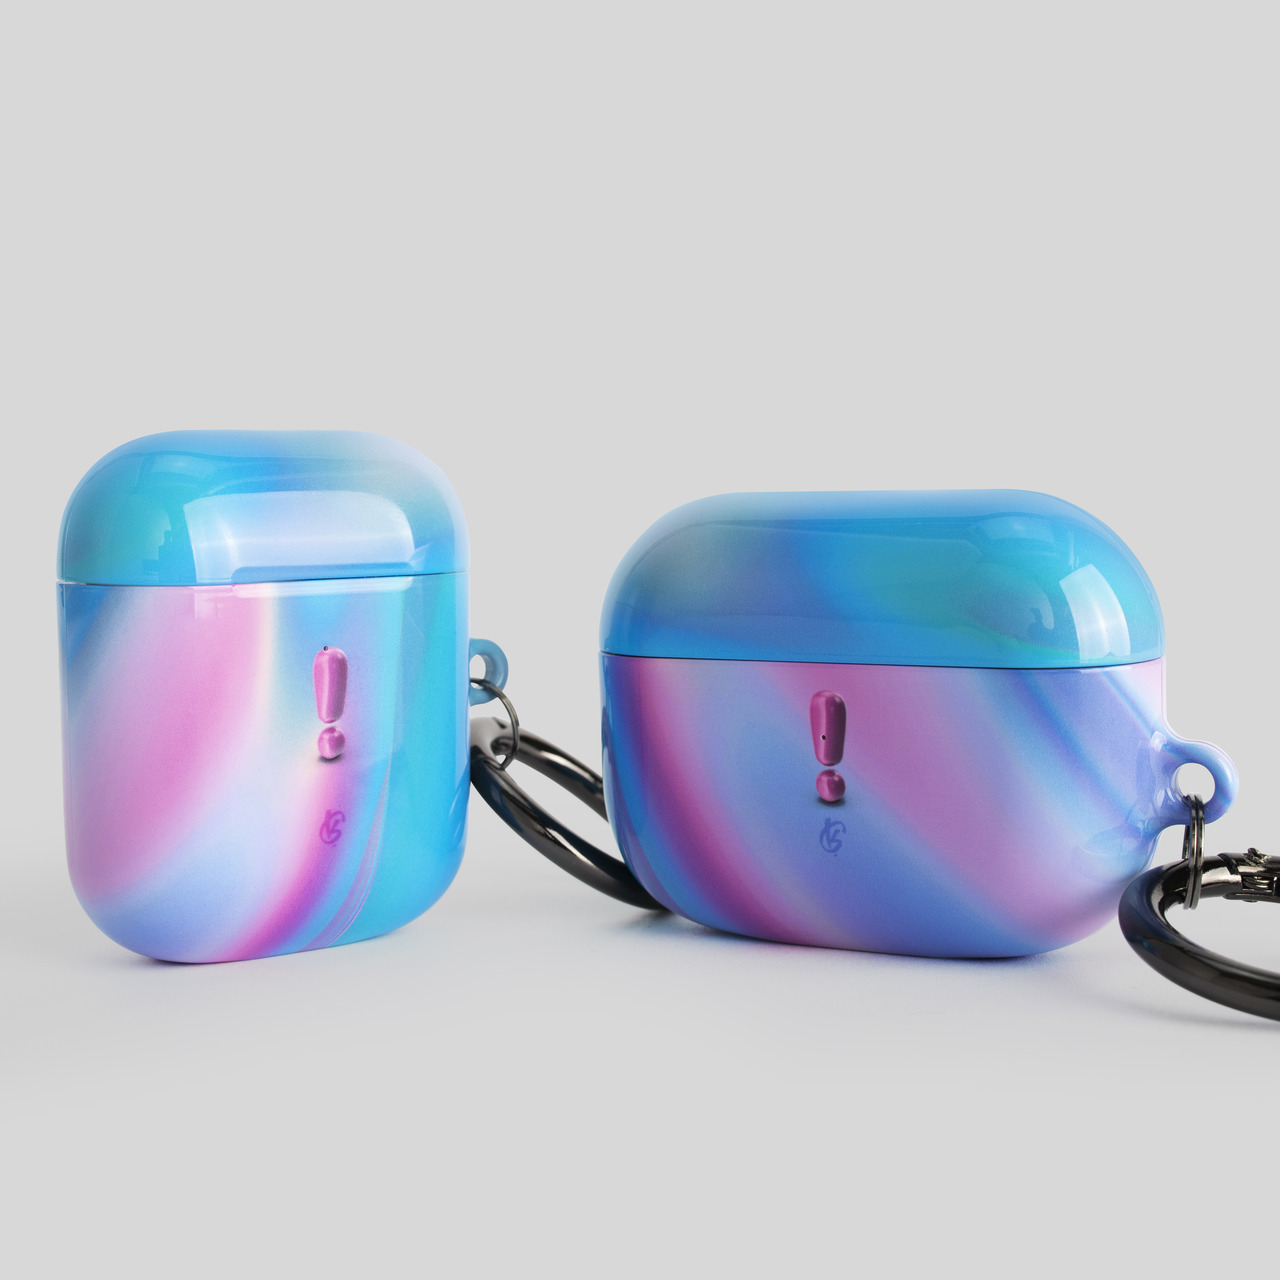 [Airpods cases] Molly No.12